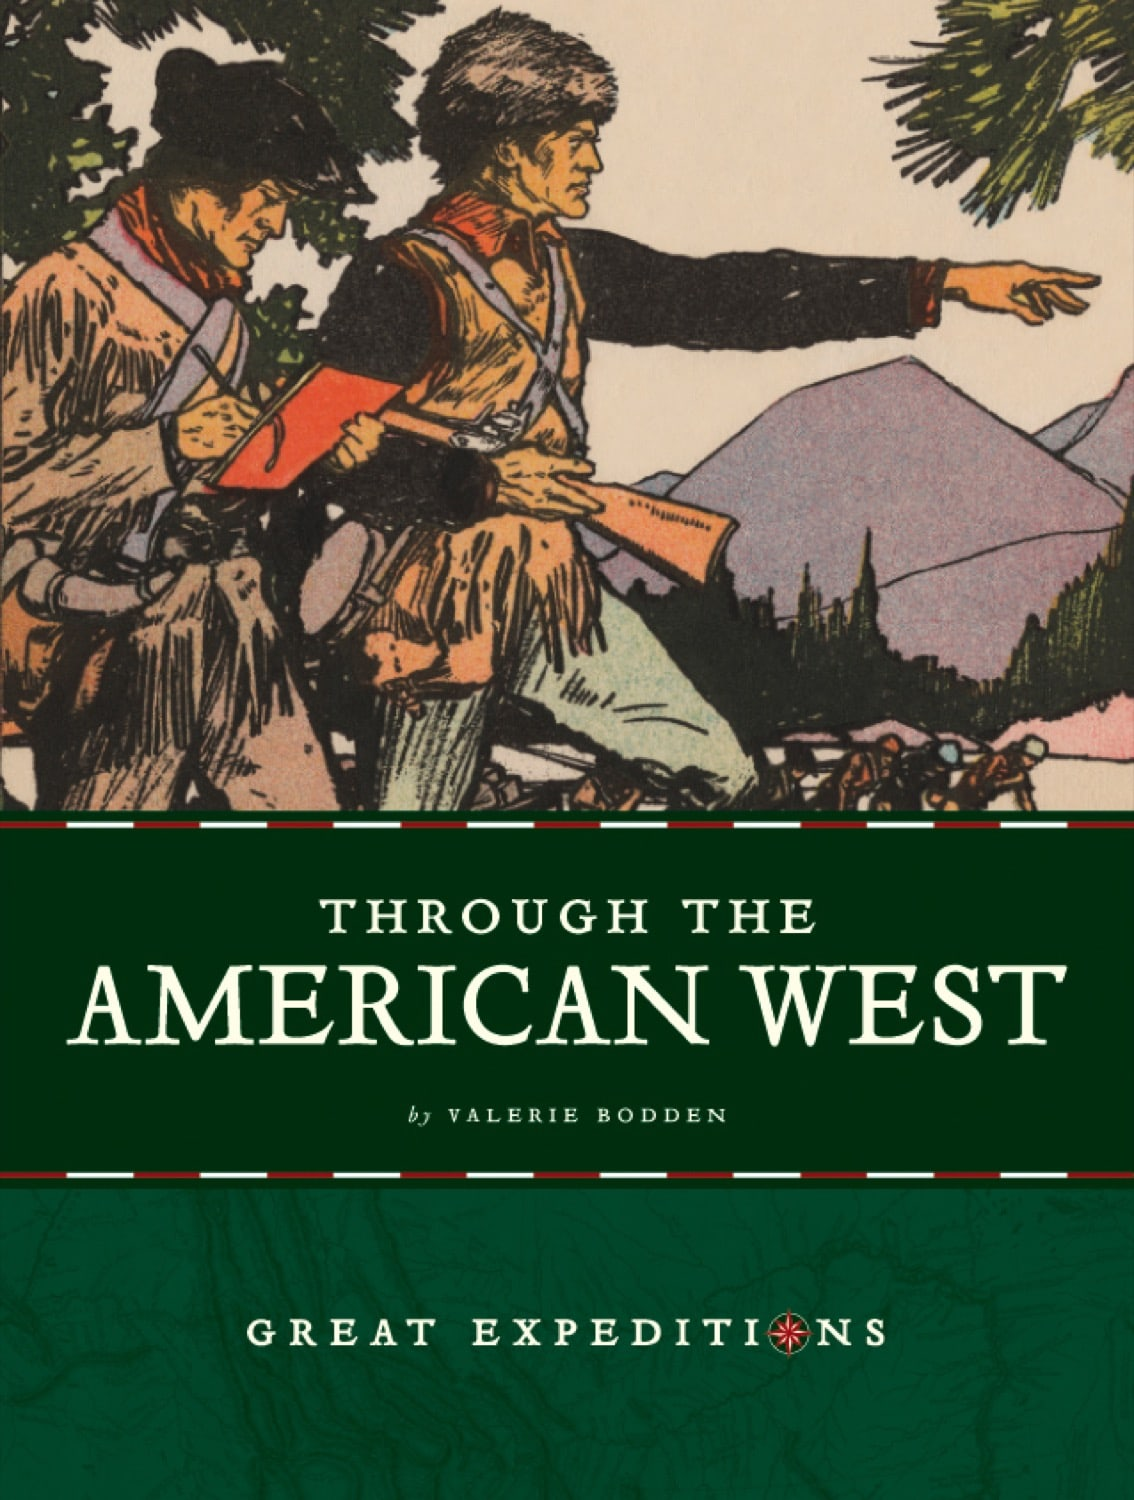 Great Expeditions: Through the American West